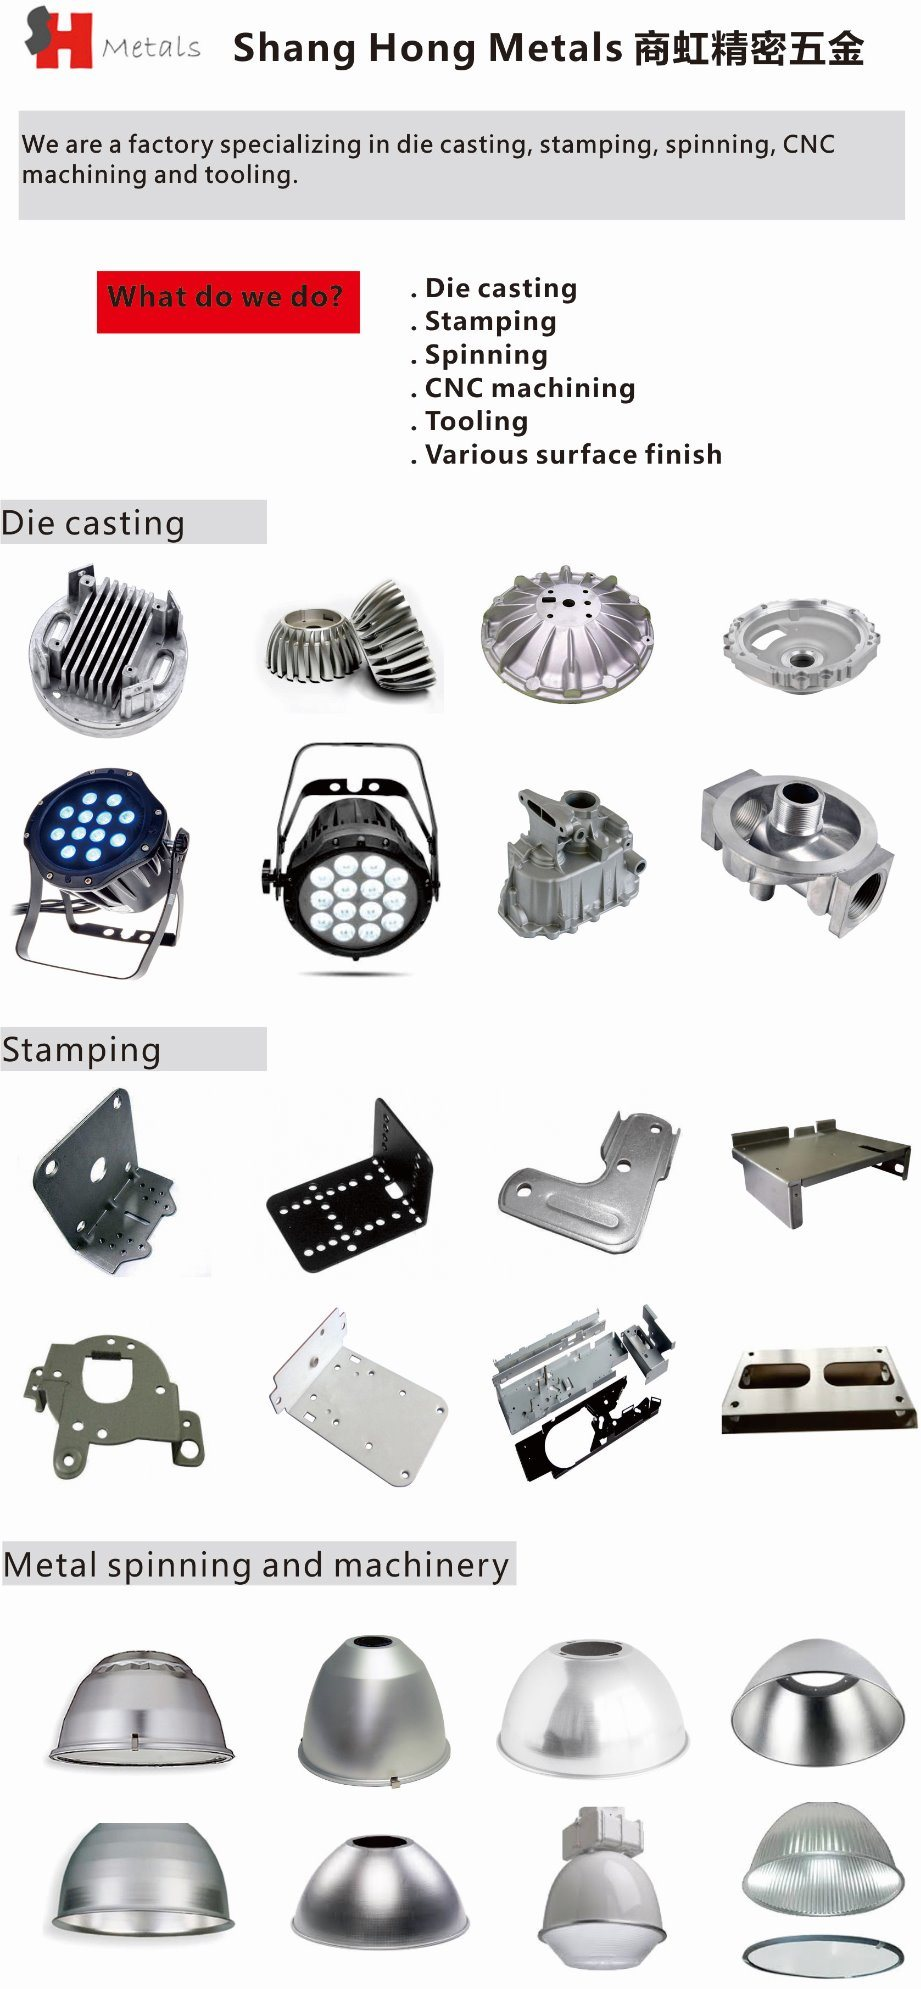 Metal Casting / Aluminum Die Casting with Painting for Heat Sink of Spot Light/LED Street Light/Indoor Lamp